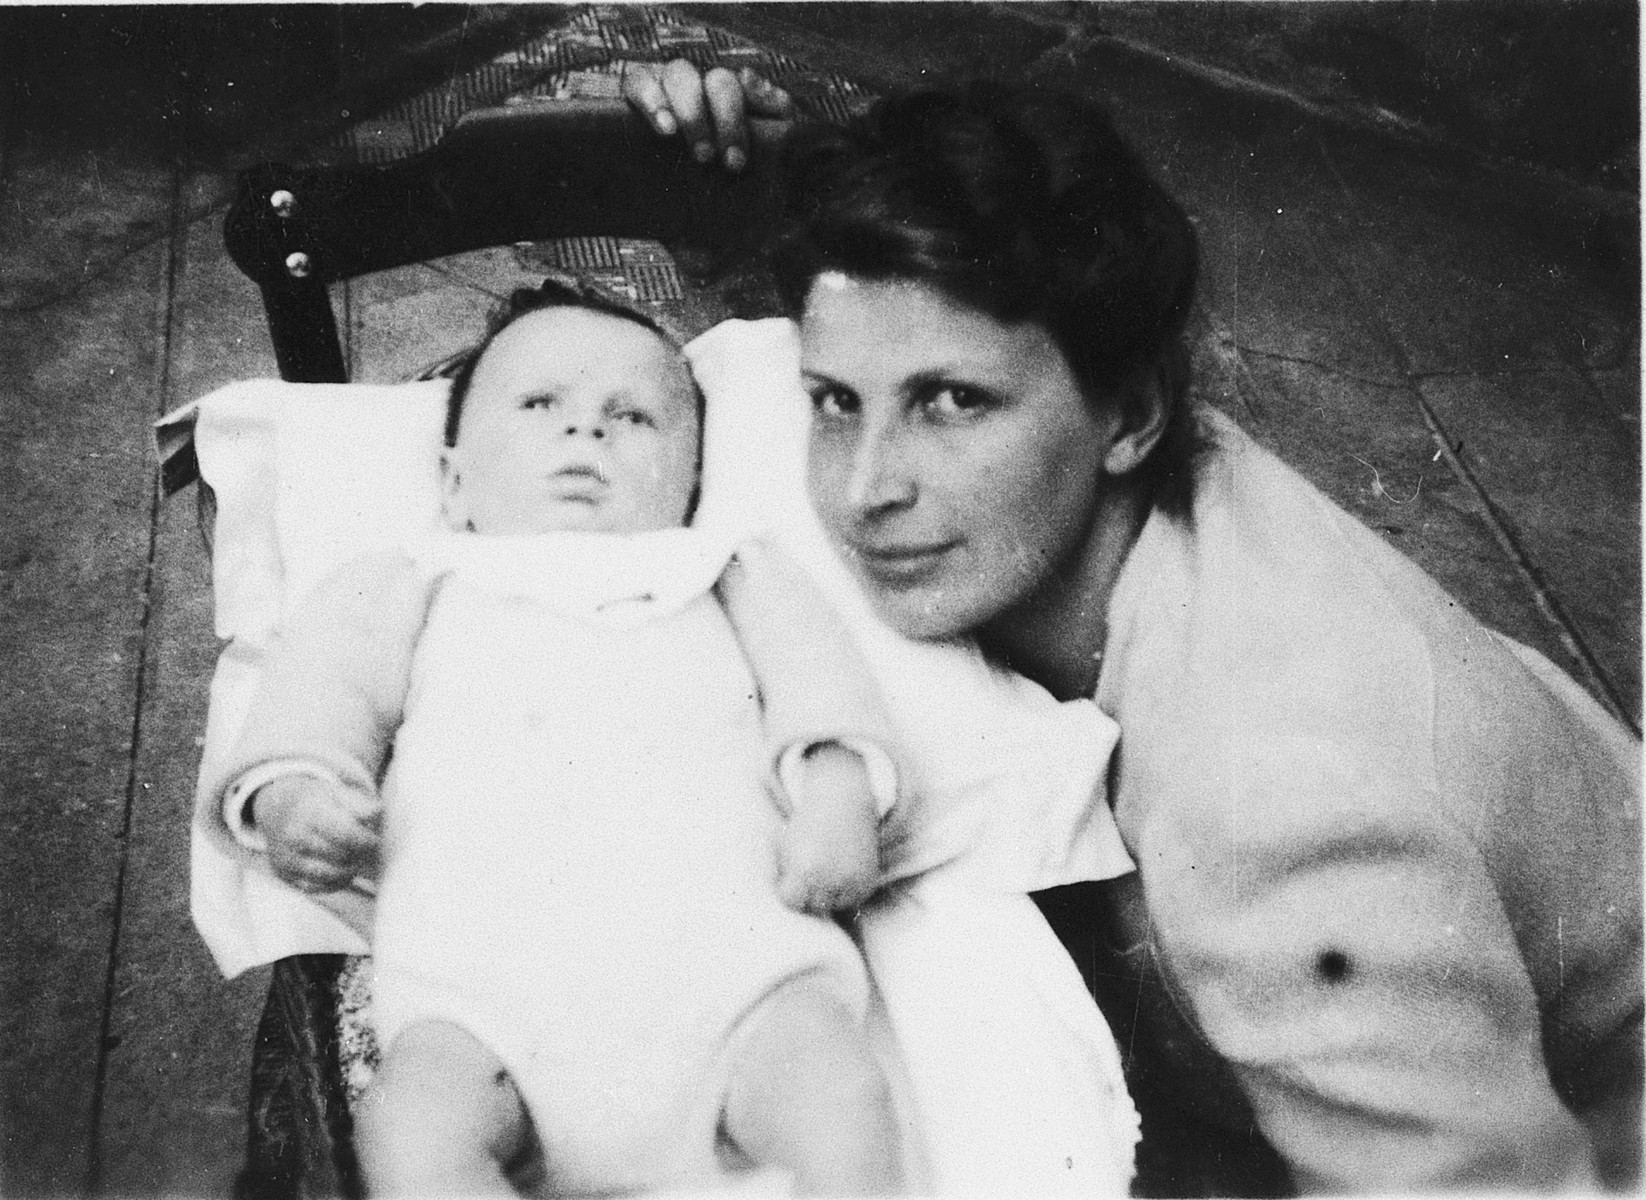 Raya Markon poses next to her infant son, Alain, in Toulouse.